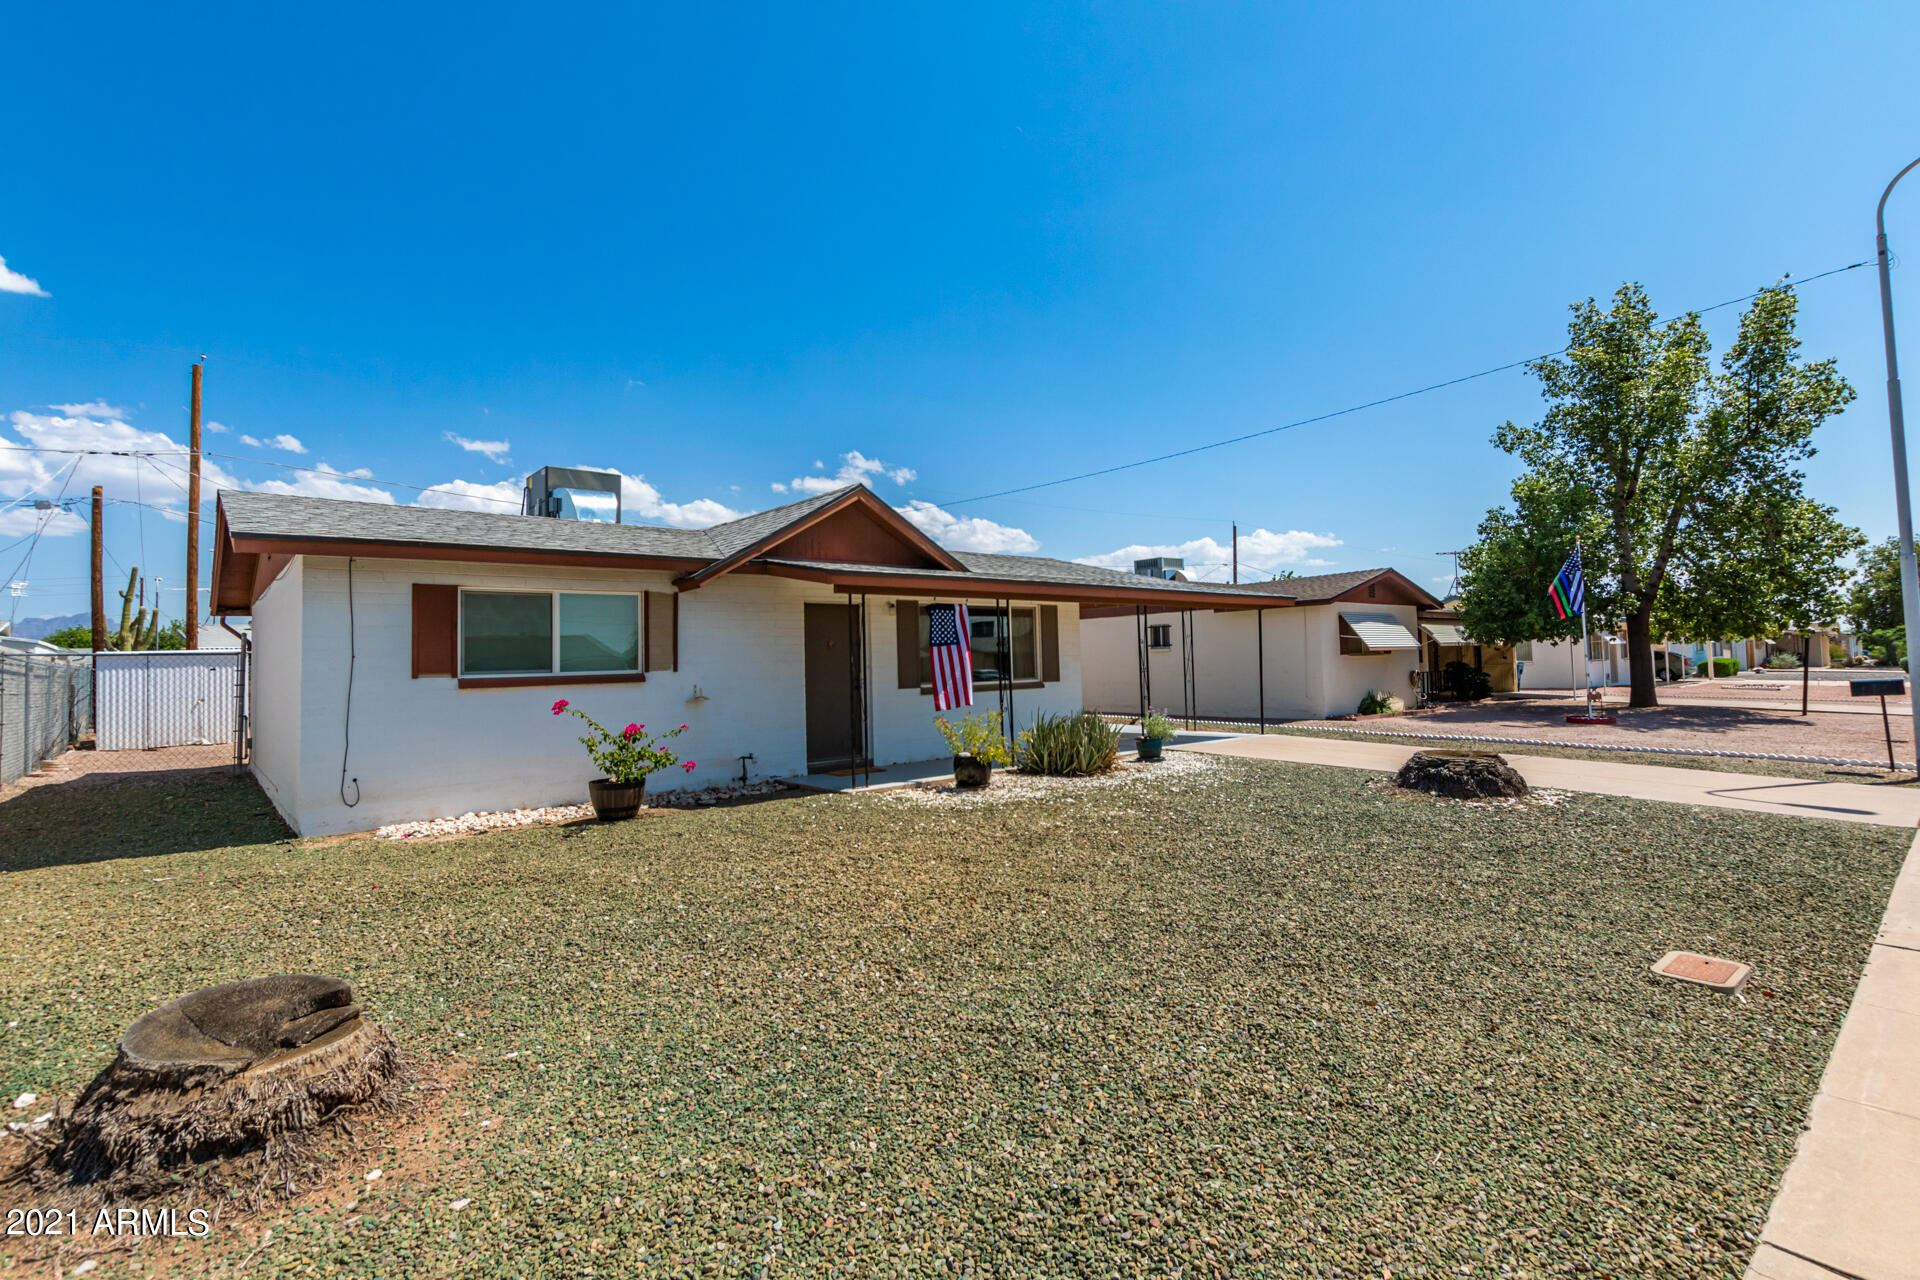 Photo of 1381 S LAWTHER Drive, Apache Junction, AZ 85120 (MLS # 6277157)